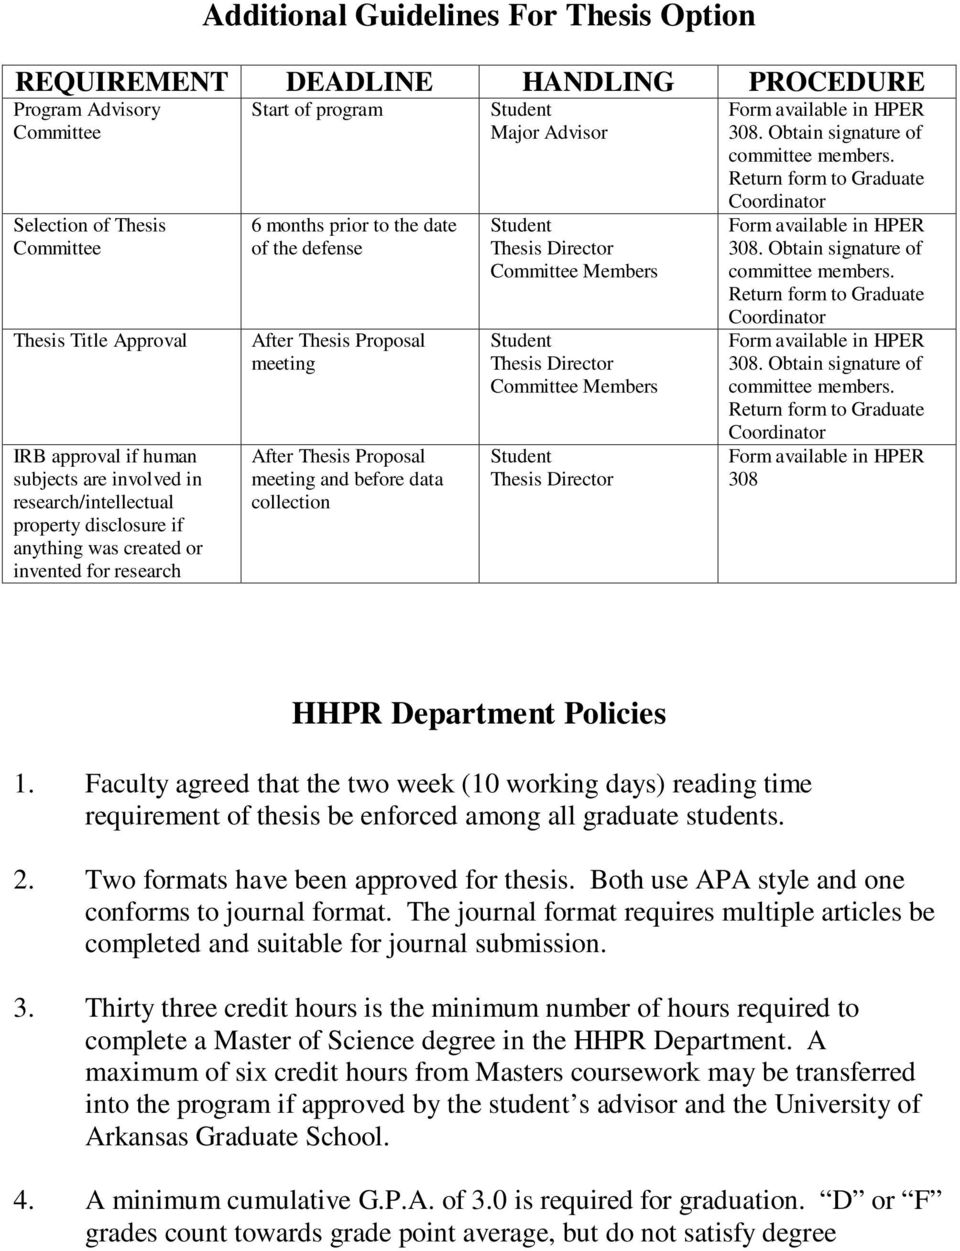 Thesis Proposal meeting and before data collection Major Advisor Thesis Director Committee Members Thesis Director Committee Members Thesis Director Form available in HPER 308.